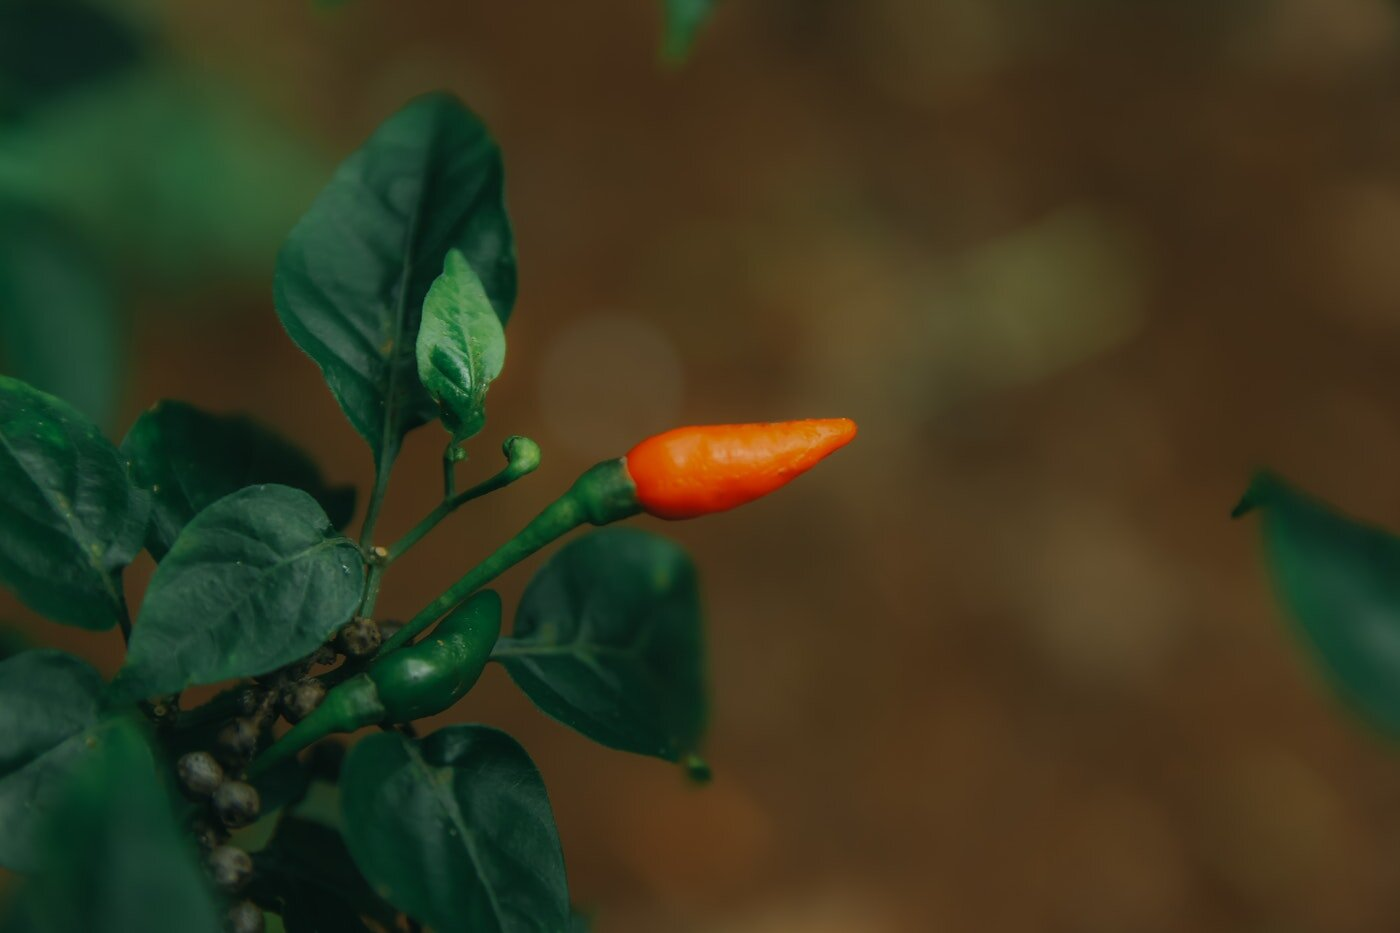 close up of chili pepper plant - which types of vegetables can be grown indoors